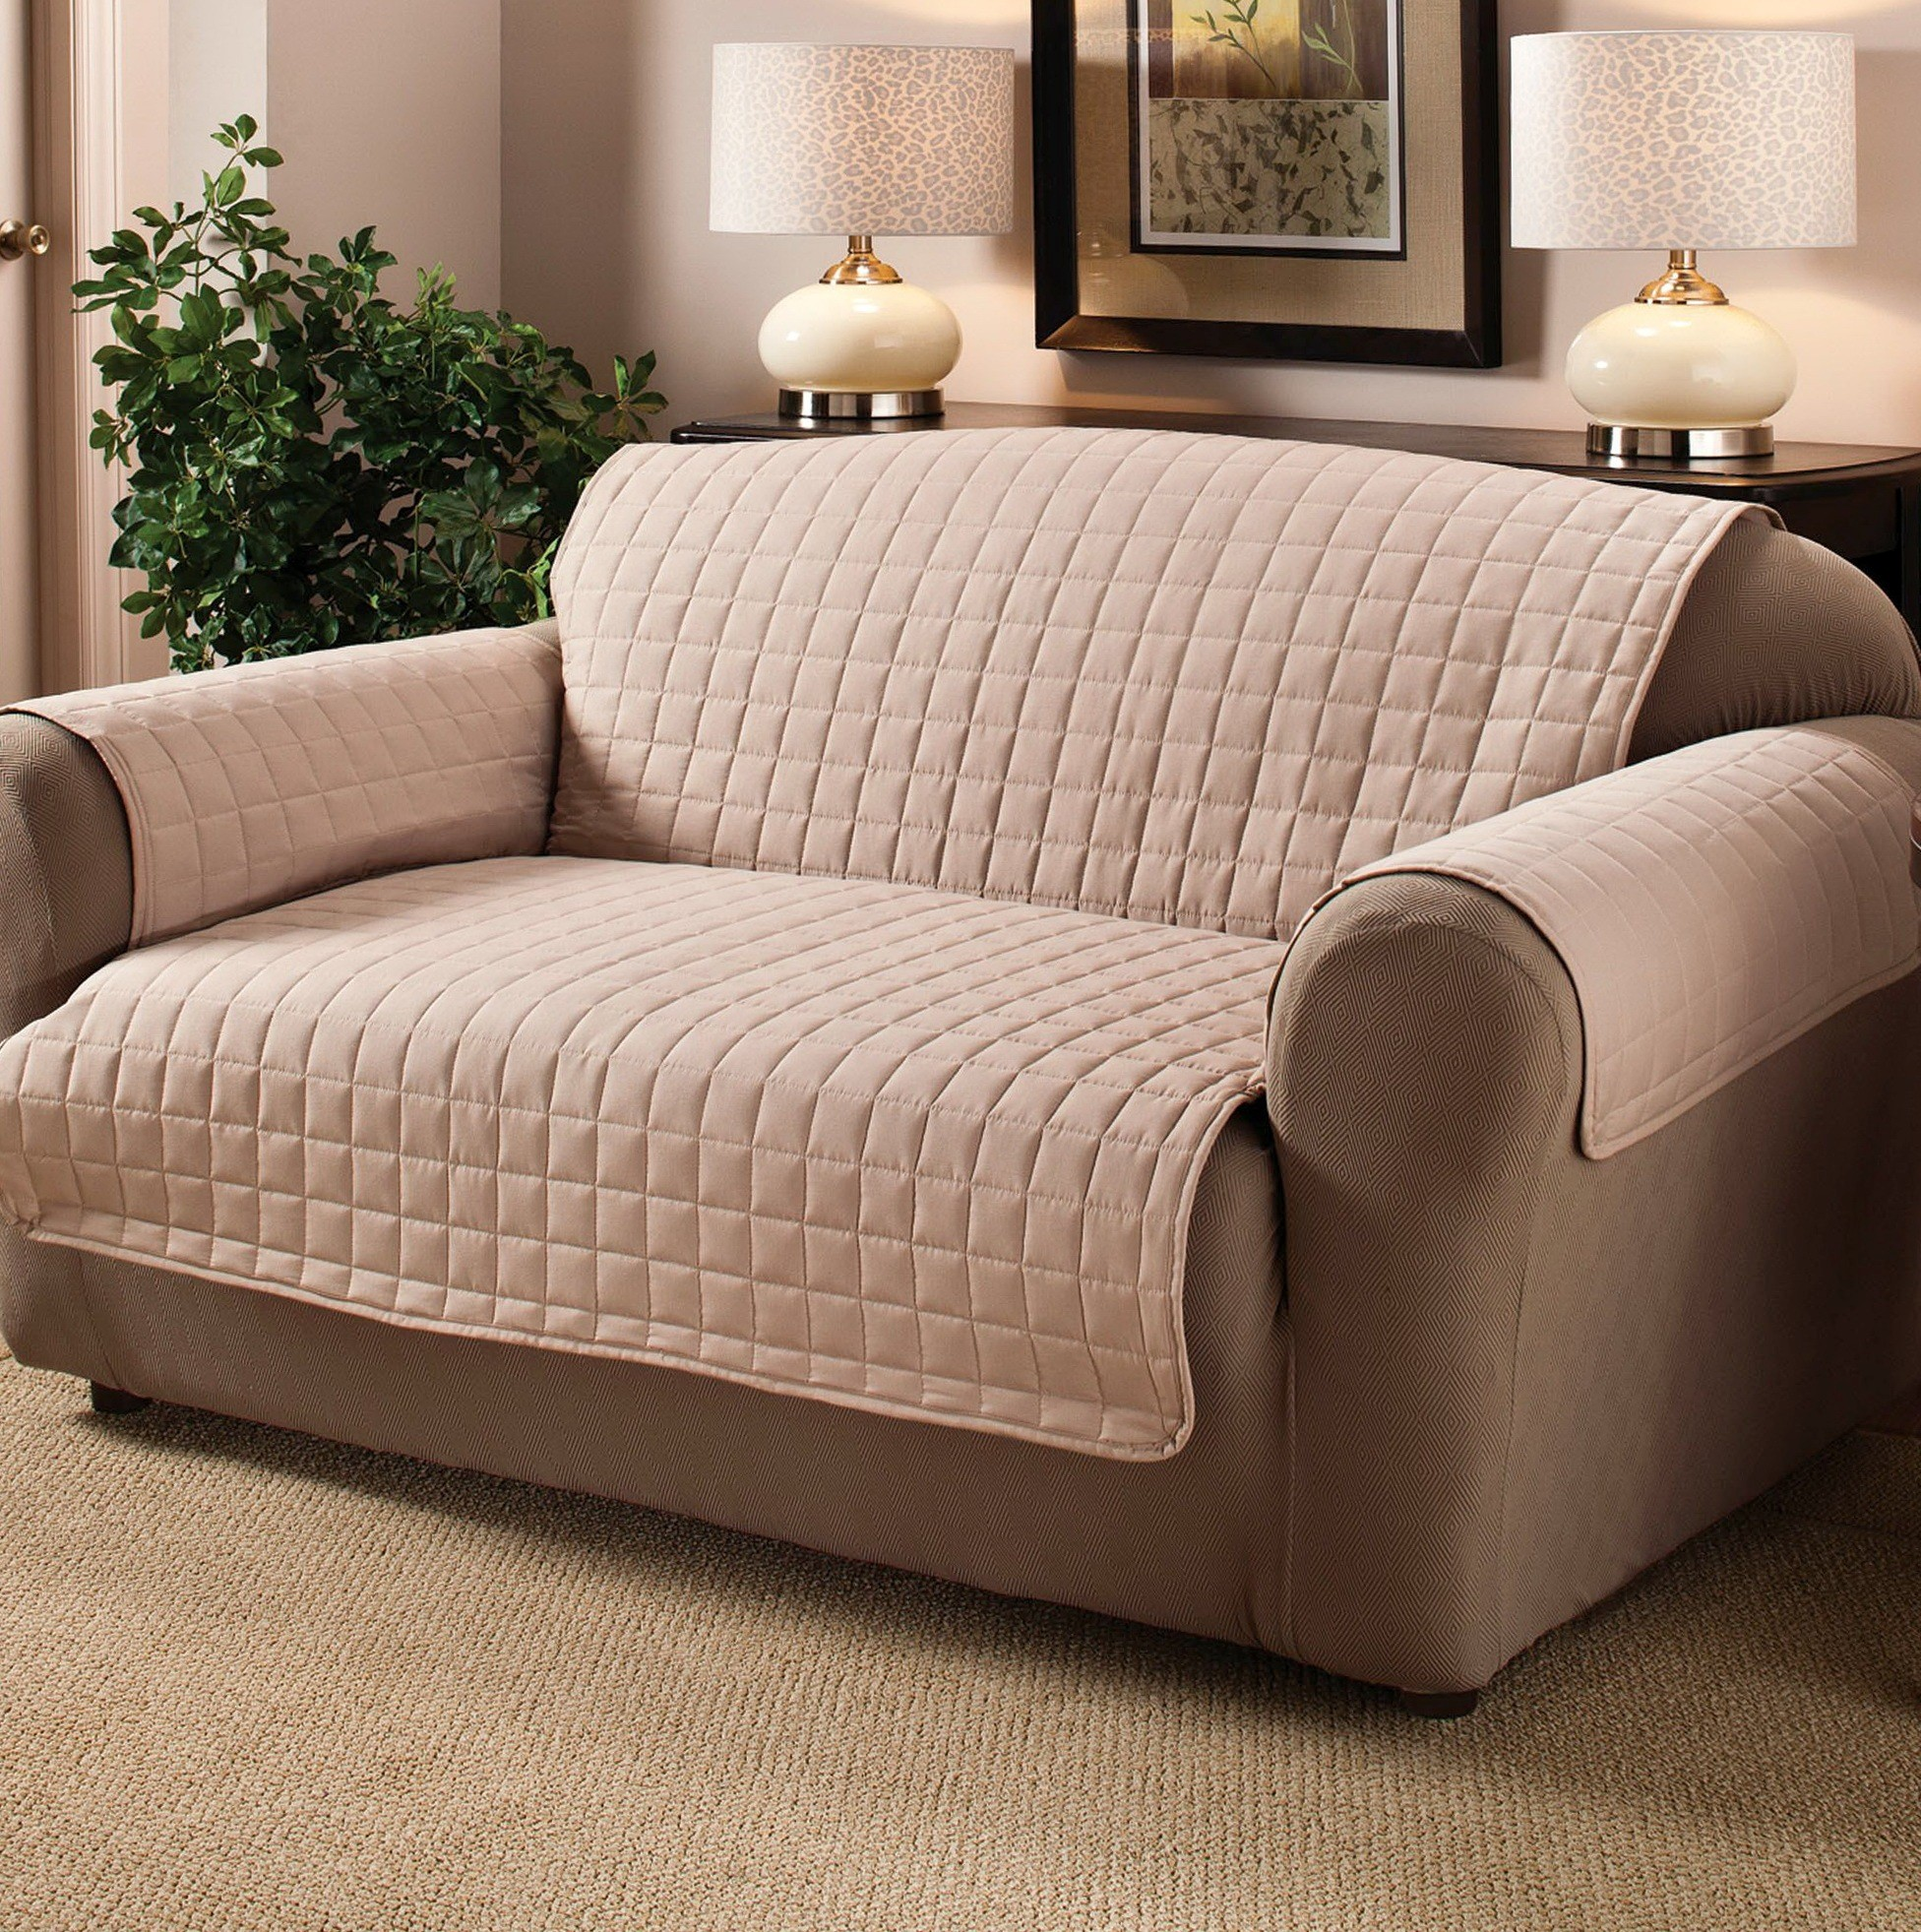 Plastic sofa Covers with Zipper top Plastic sofa Covers Elegant Plastic sofa Covers with Zipper S Hd Picture